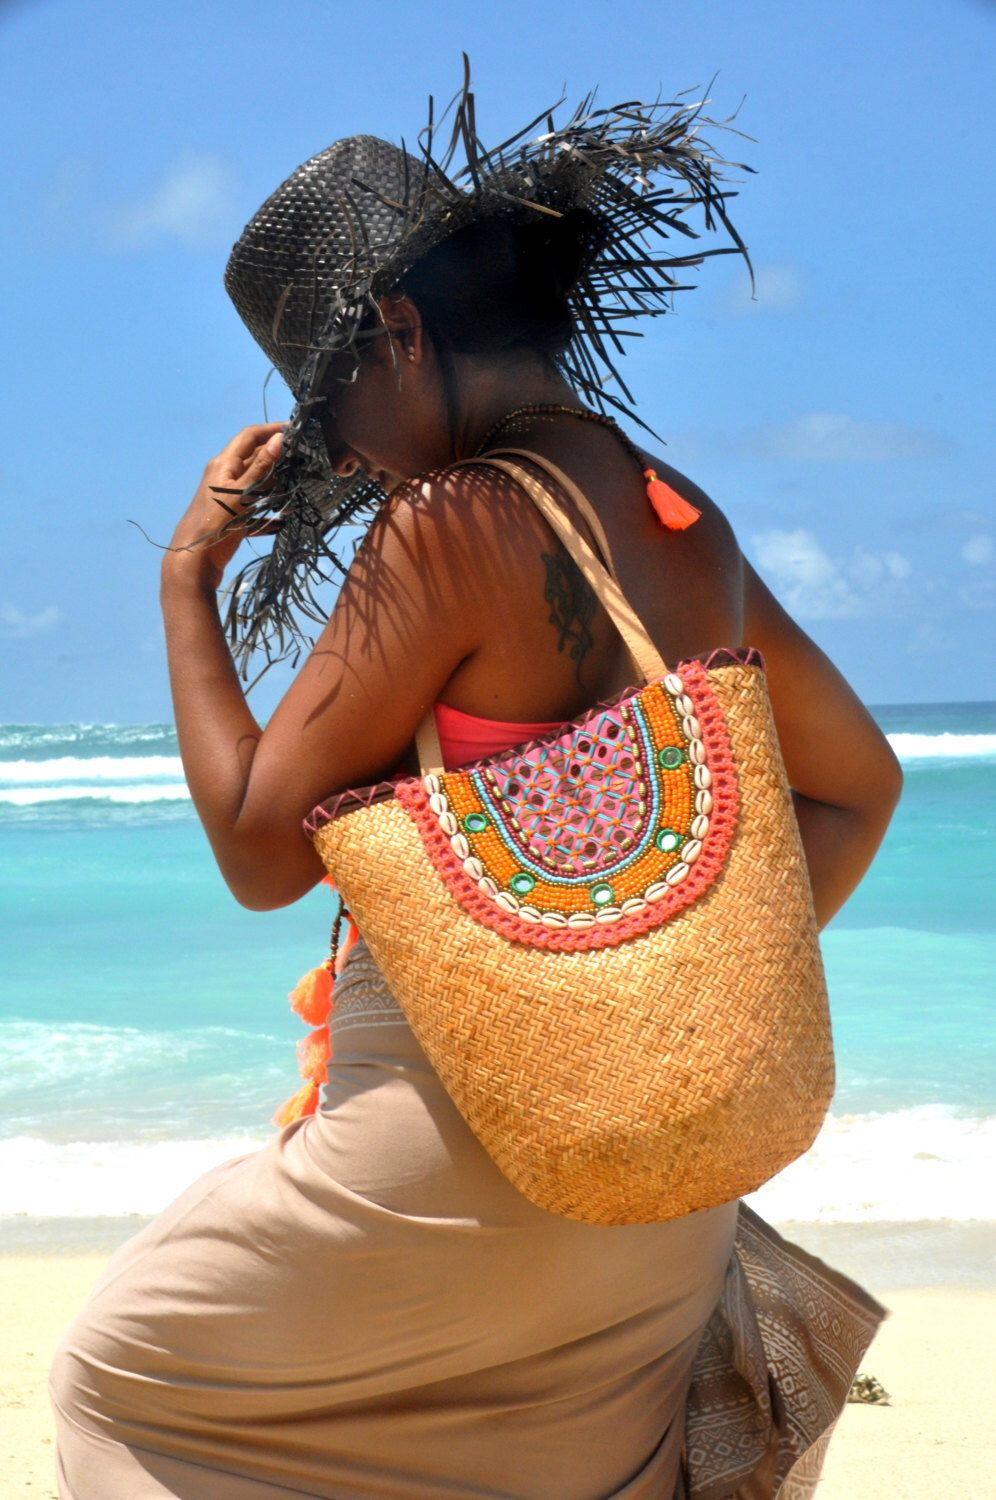 SALE!!! Beach bag Straw/Tassels straw basket/Straw beach bag/Beach ...